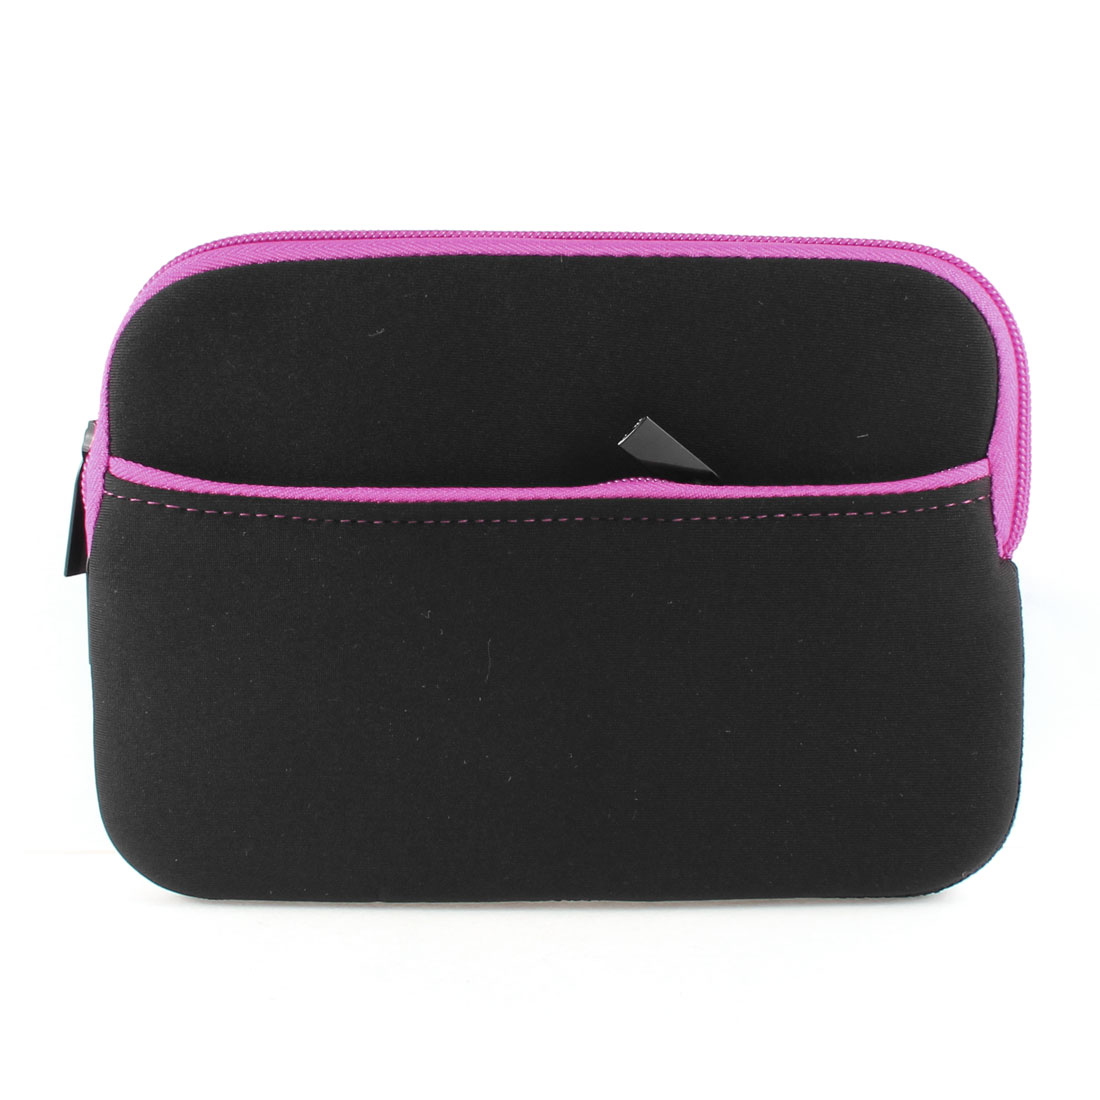 "Zipped Neoprene Sleeve Bag Case Protector Fuchsia Black for 7"" Tablet Laptop PC"